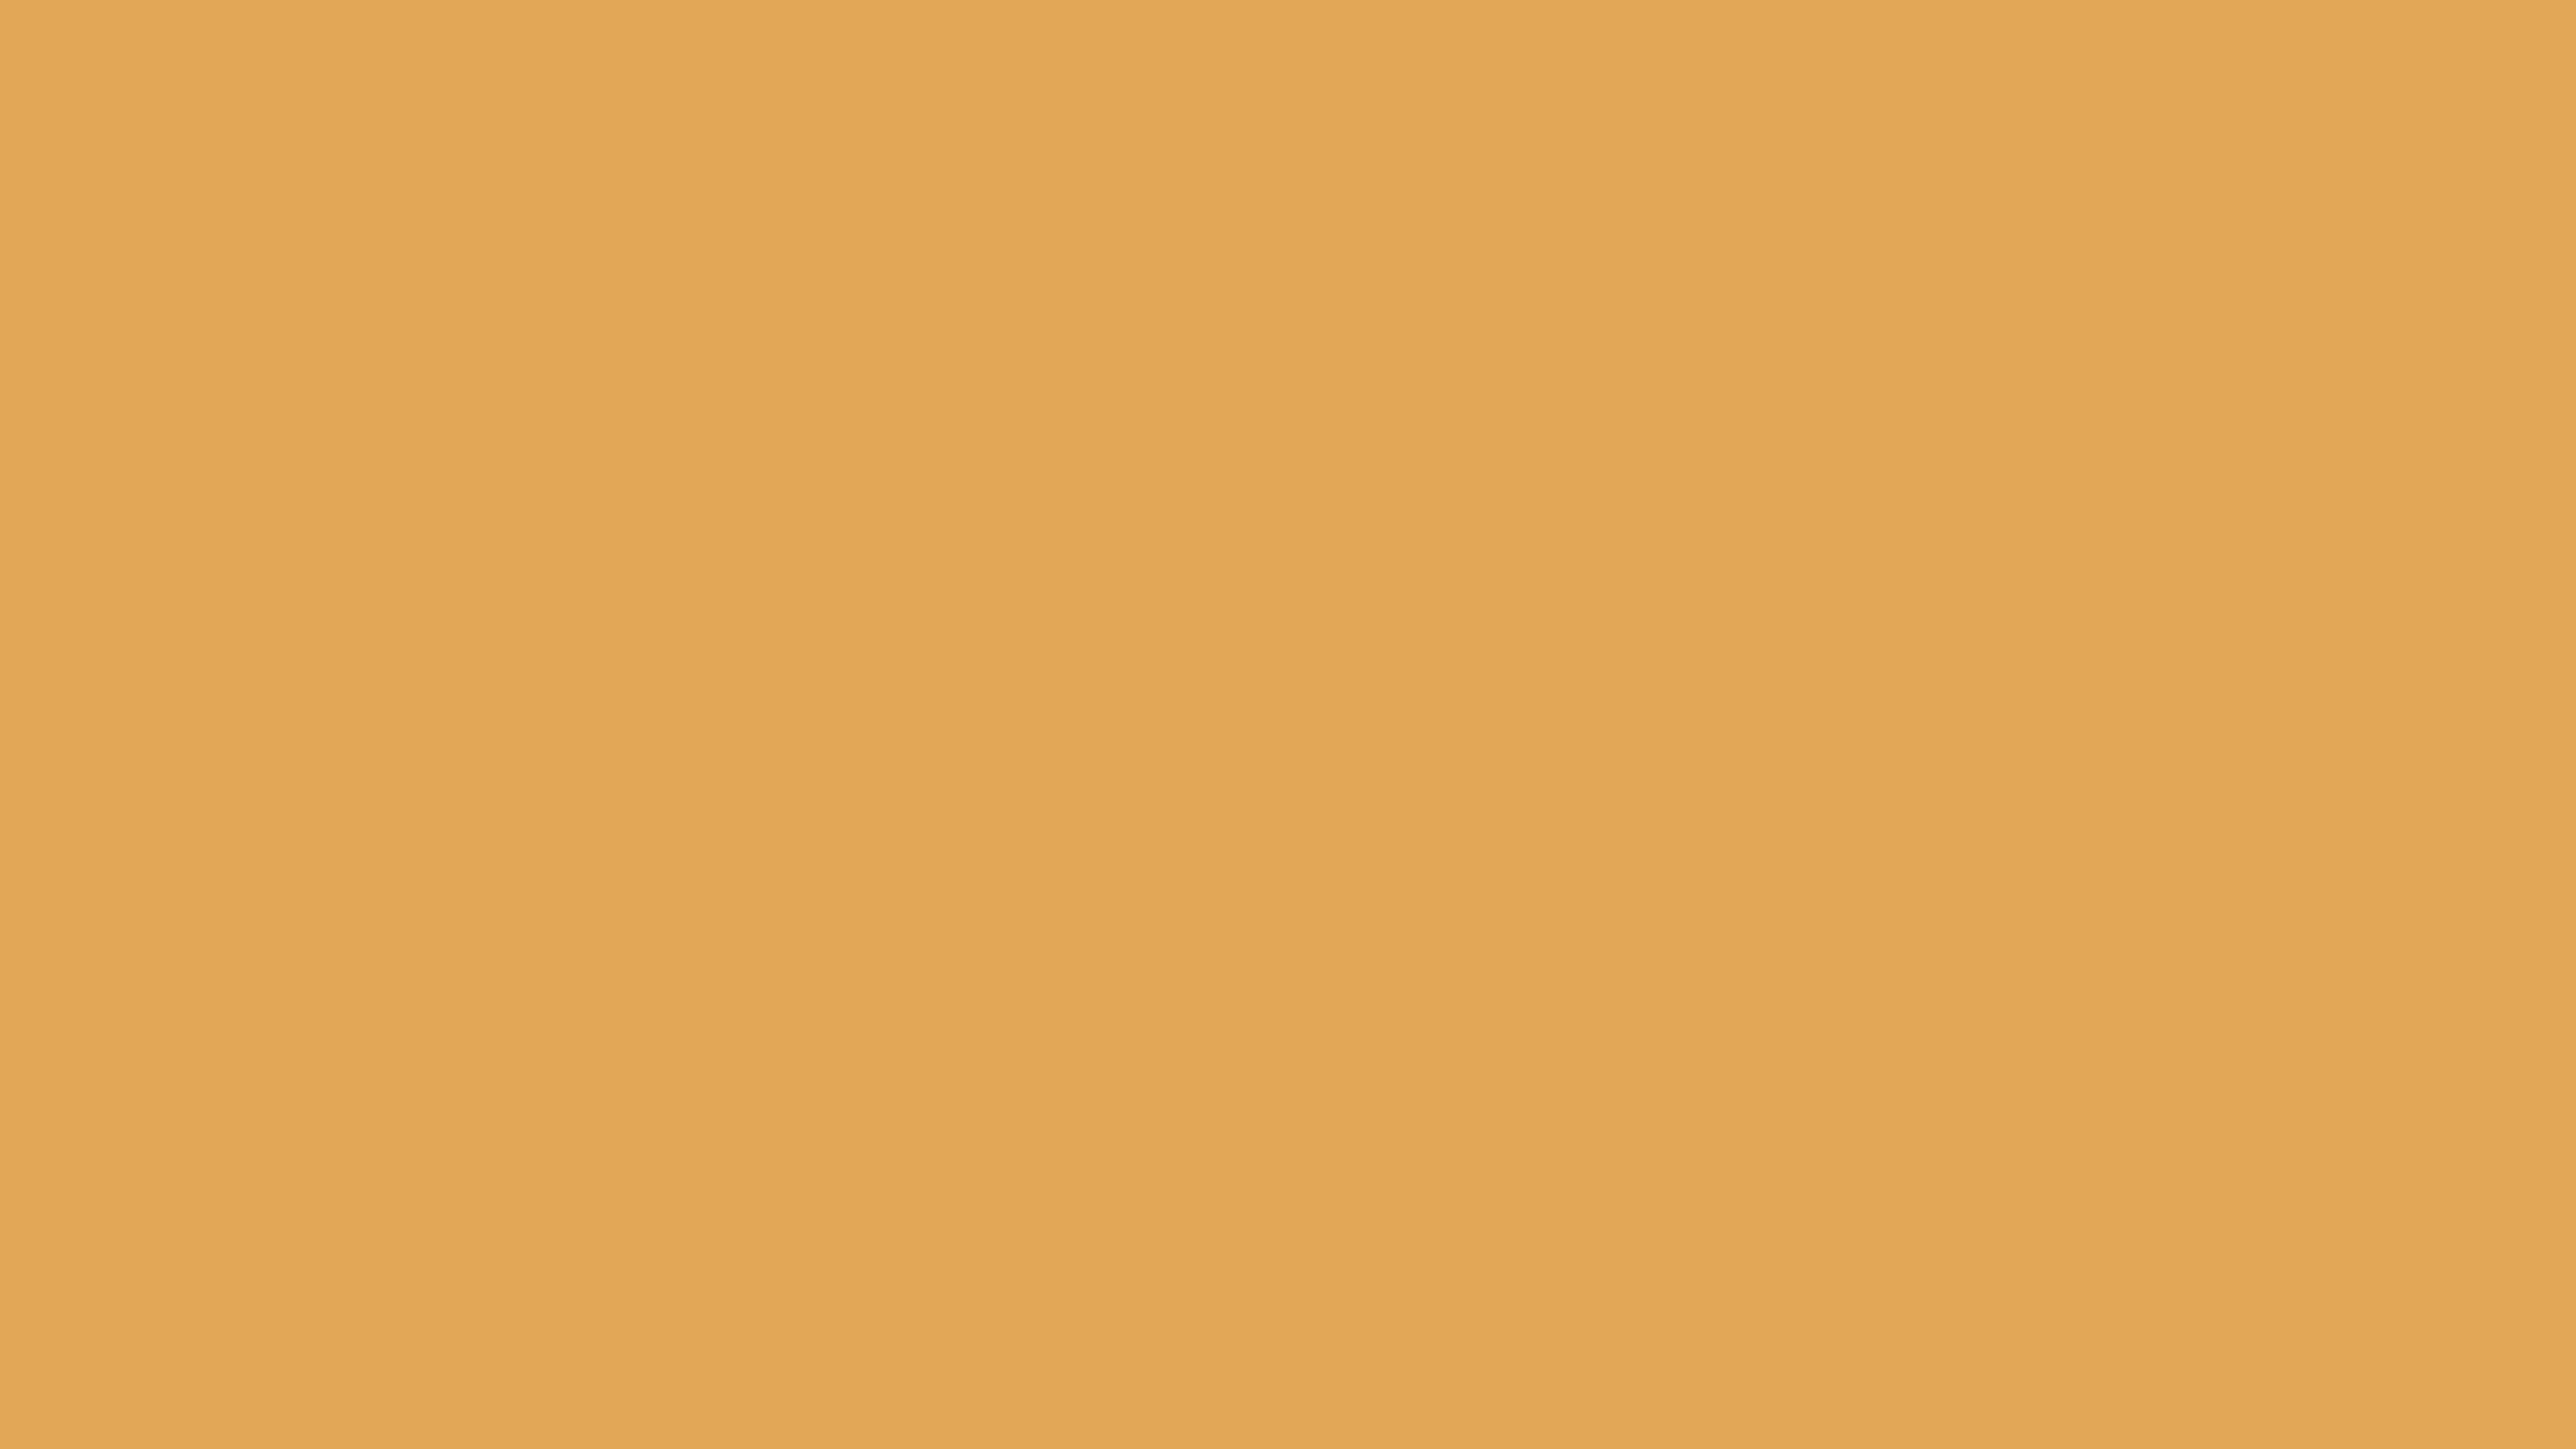 4096x2304 Indian Yellow Solid Color Background